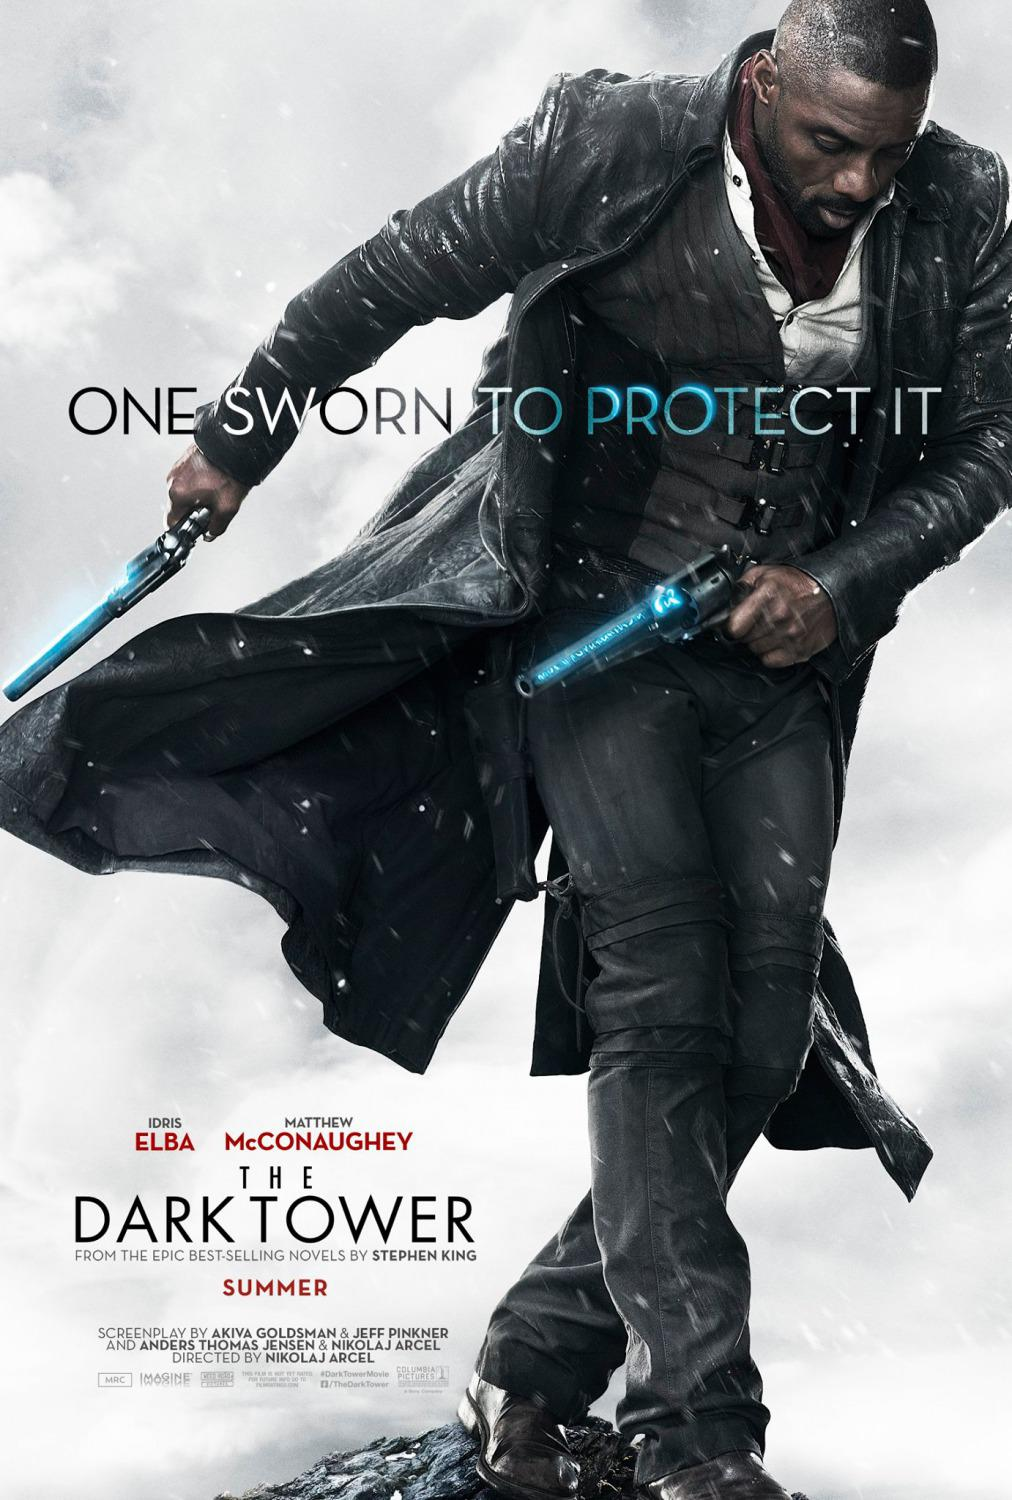 Dark Tower - film poster - Idris Elba- One Sworn to Protect it